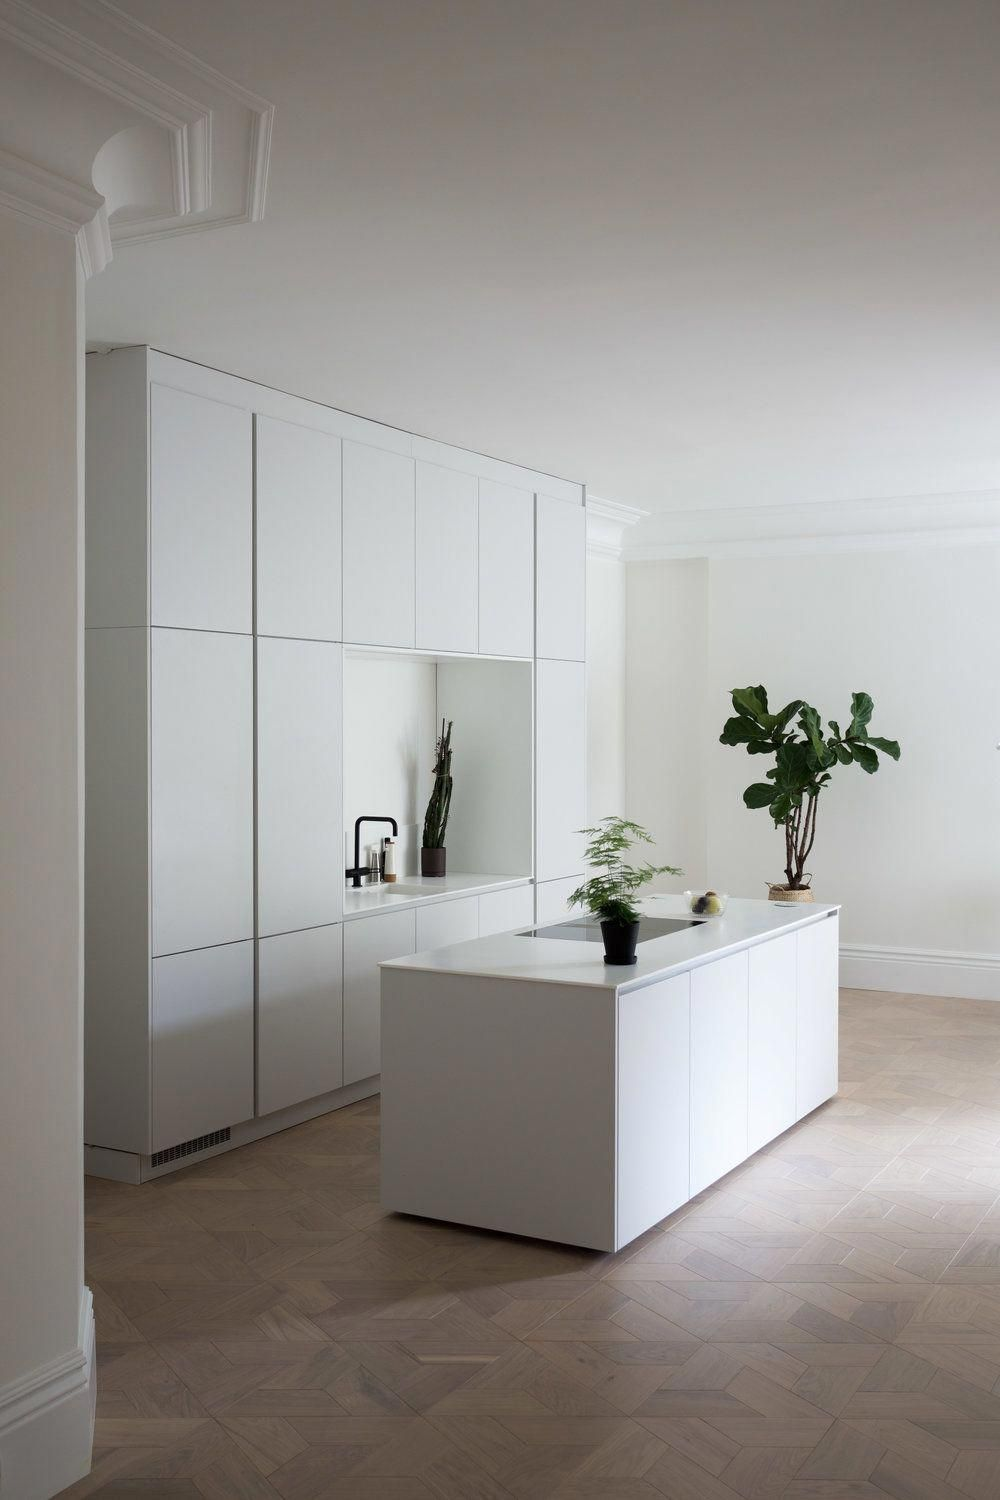 How to revamp the kitchen table? | Minimalist dining room ...